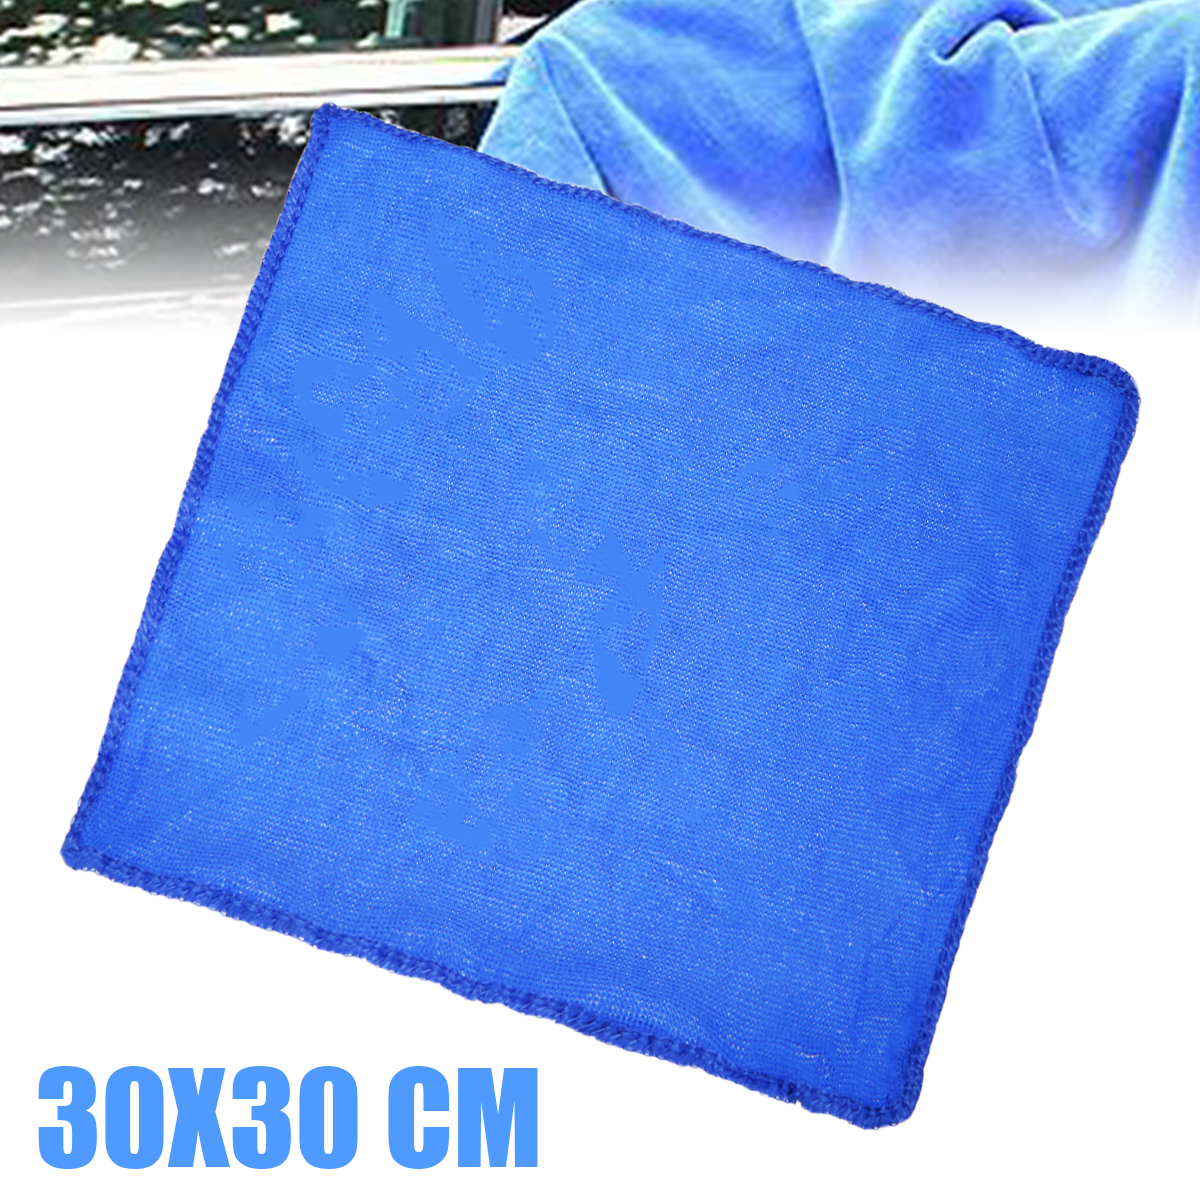 Image 3 - 1pc Car Soft Microfiber Car Care Cloths Absorbent Wash Cleaning Polish Towel Cloth 30*30cm Detailing Towels For Car Washing-in Sponges, Cloths & Brushes from Automobiles & Motorcycles